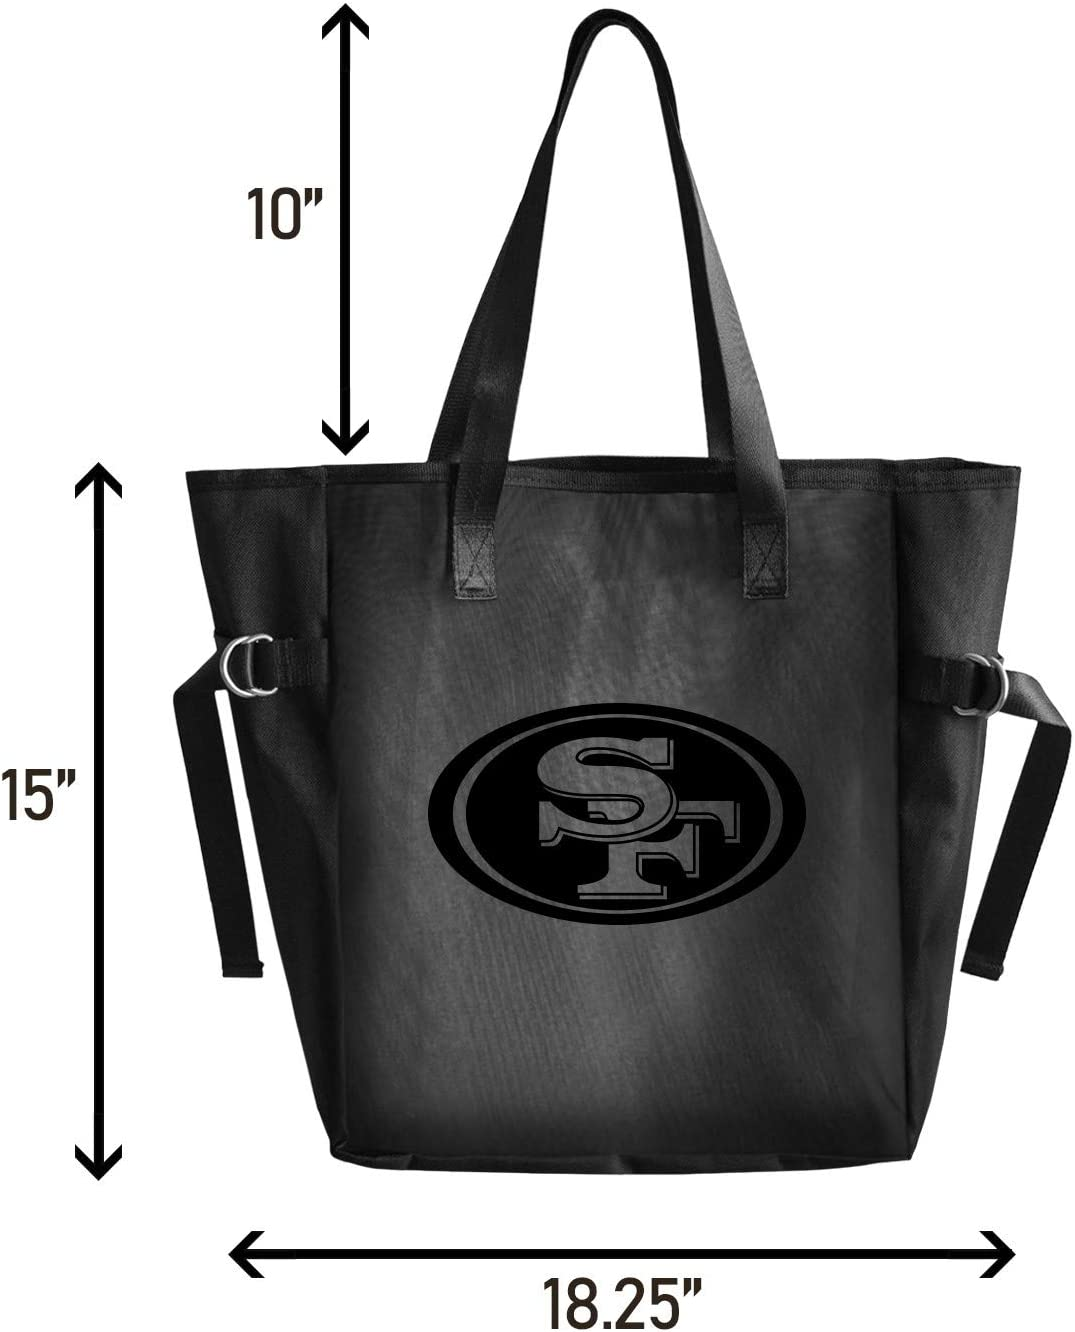 Littlearth Productions Officially Licensed Black Mesh Reusable Fabric Tailgate Tote Bag with Black Vinyl Team Logo